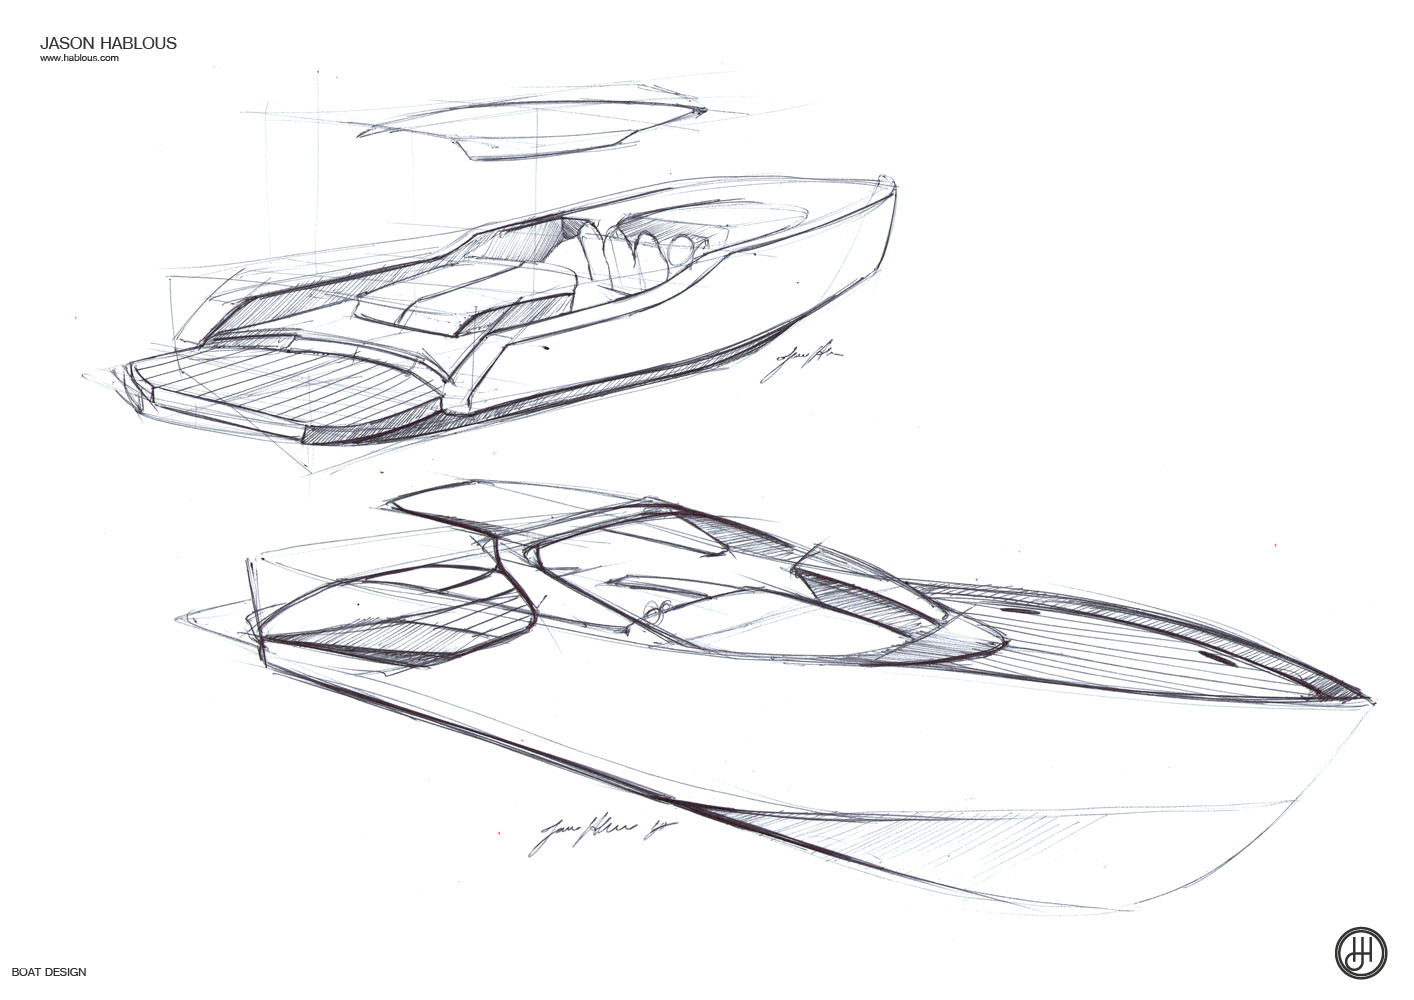 jason hablous design  33ft weekender boat design